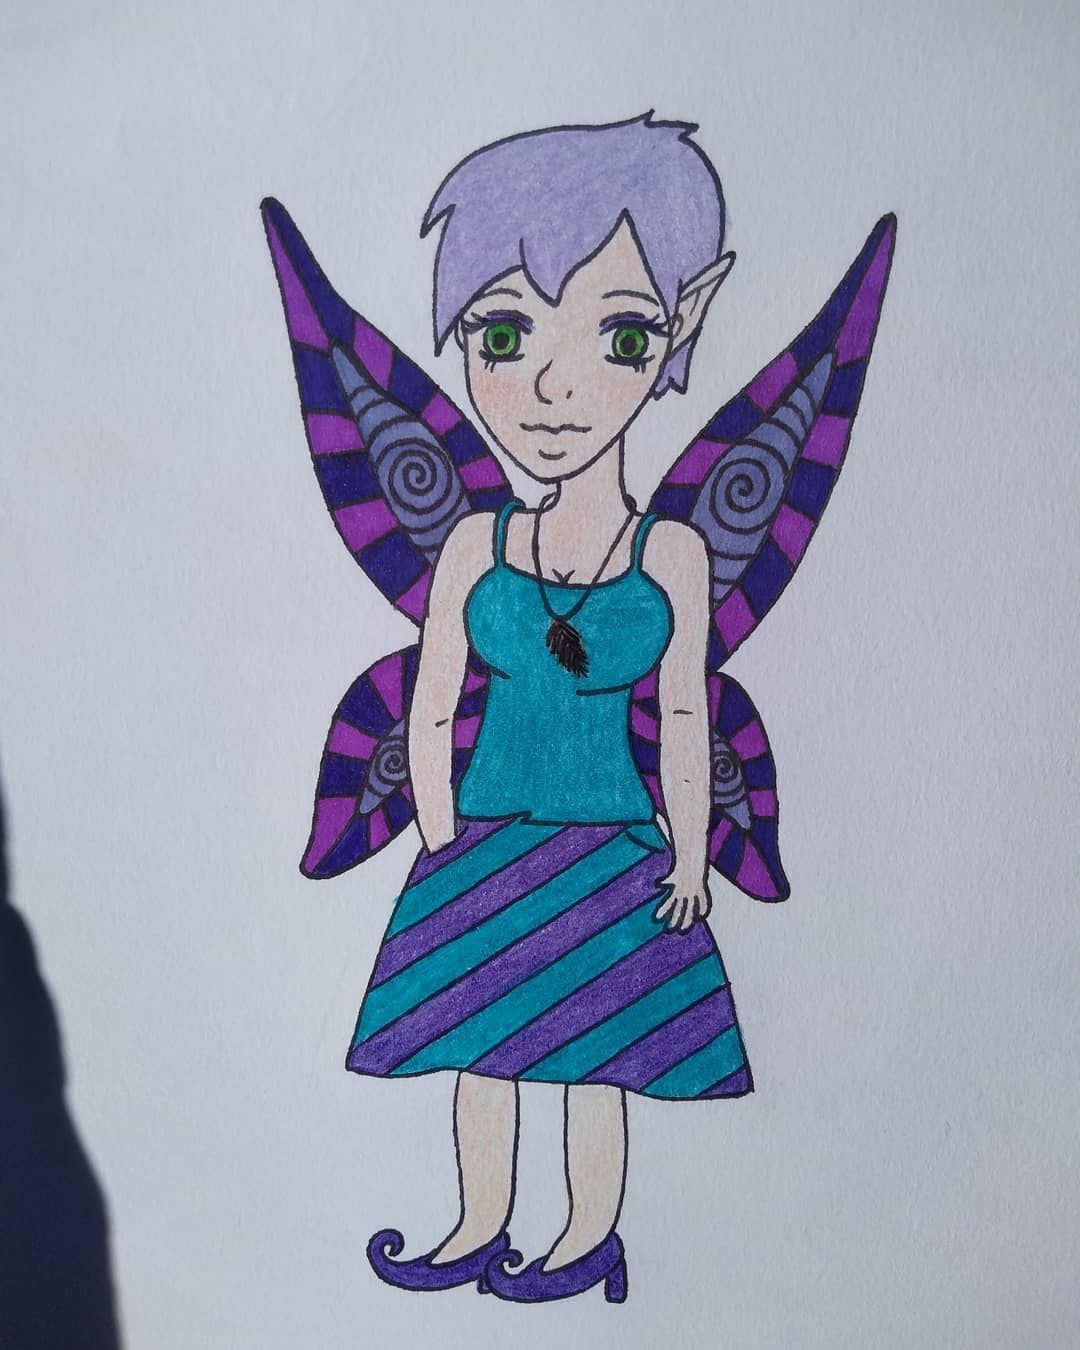 Watch The Best Youtube Videos Online She Looks So Small I Named Her Moon Flower I Like Her Face And Her Wings Her Shoe Sketch Book Moon Flower Illustration